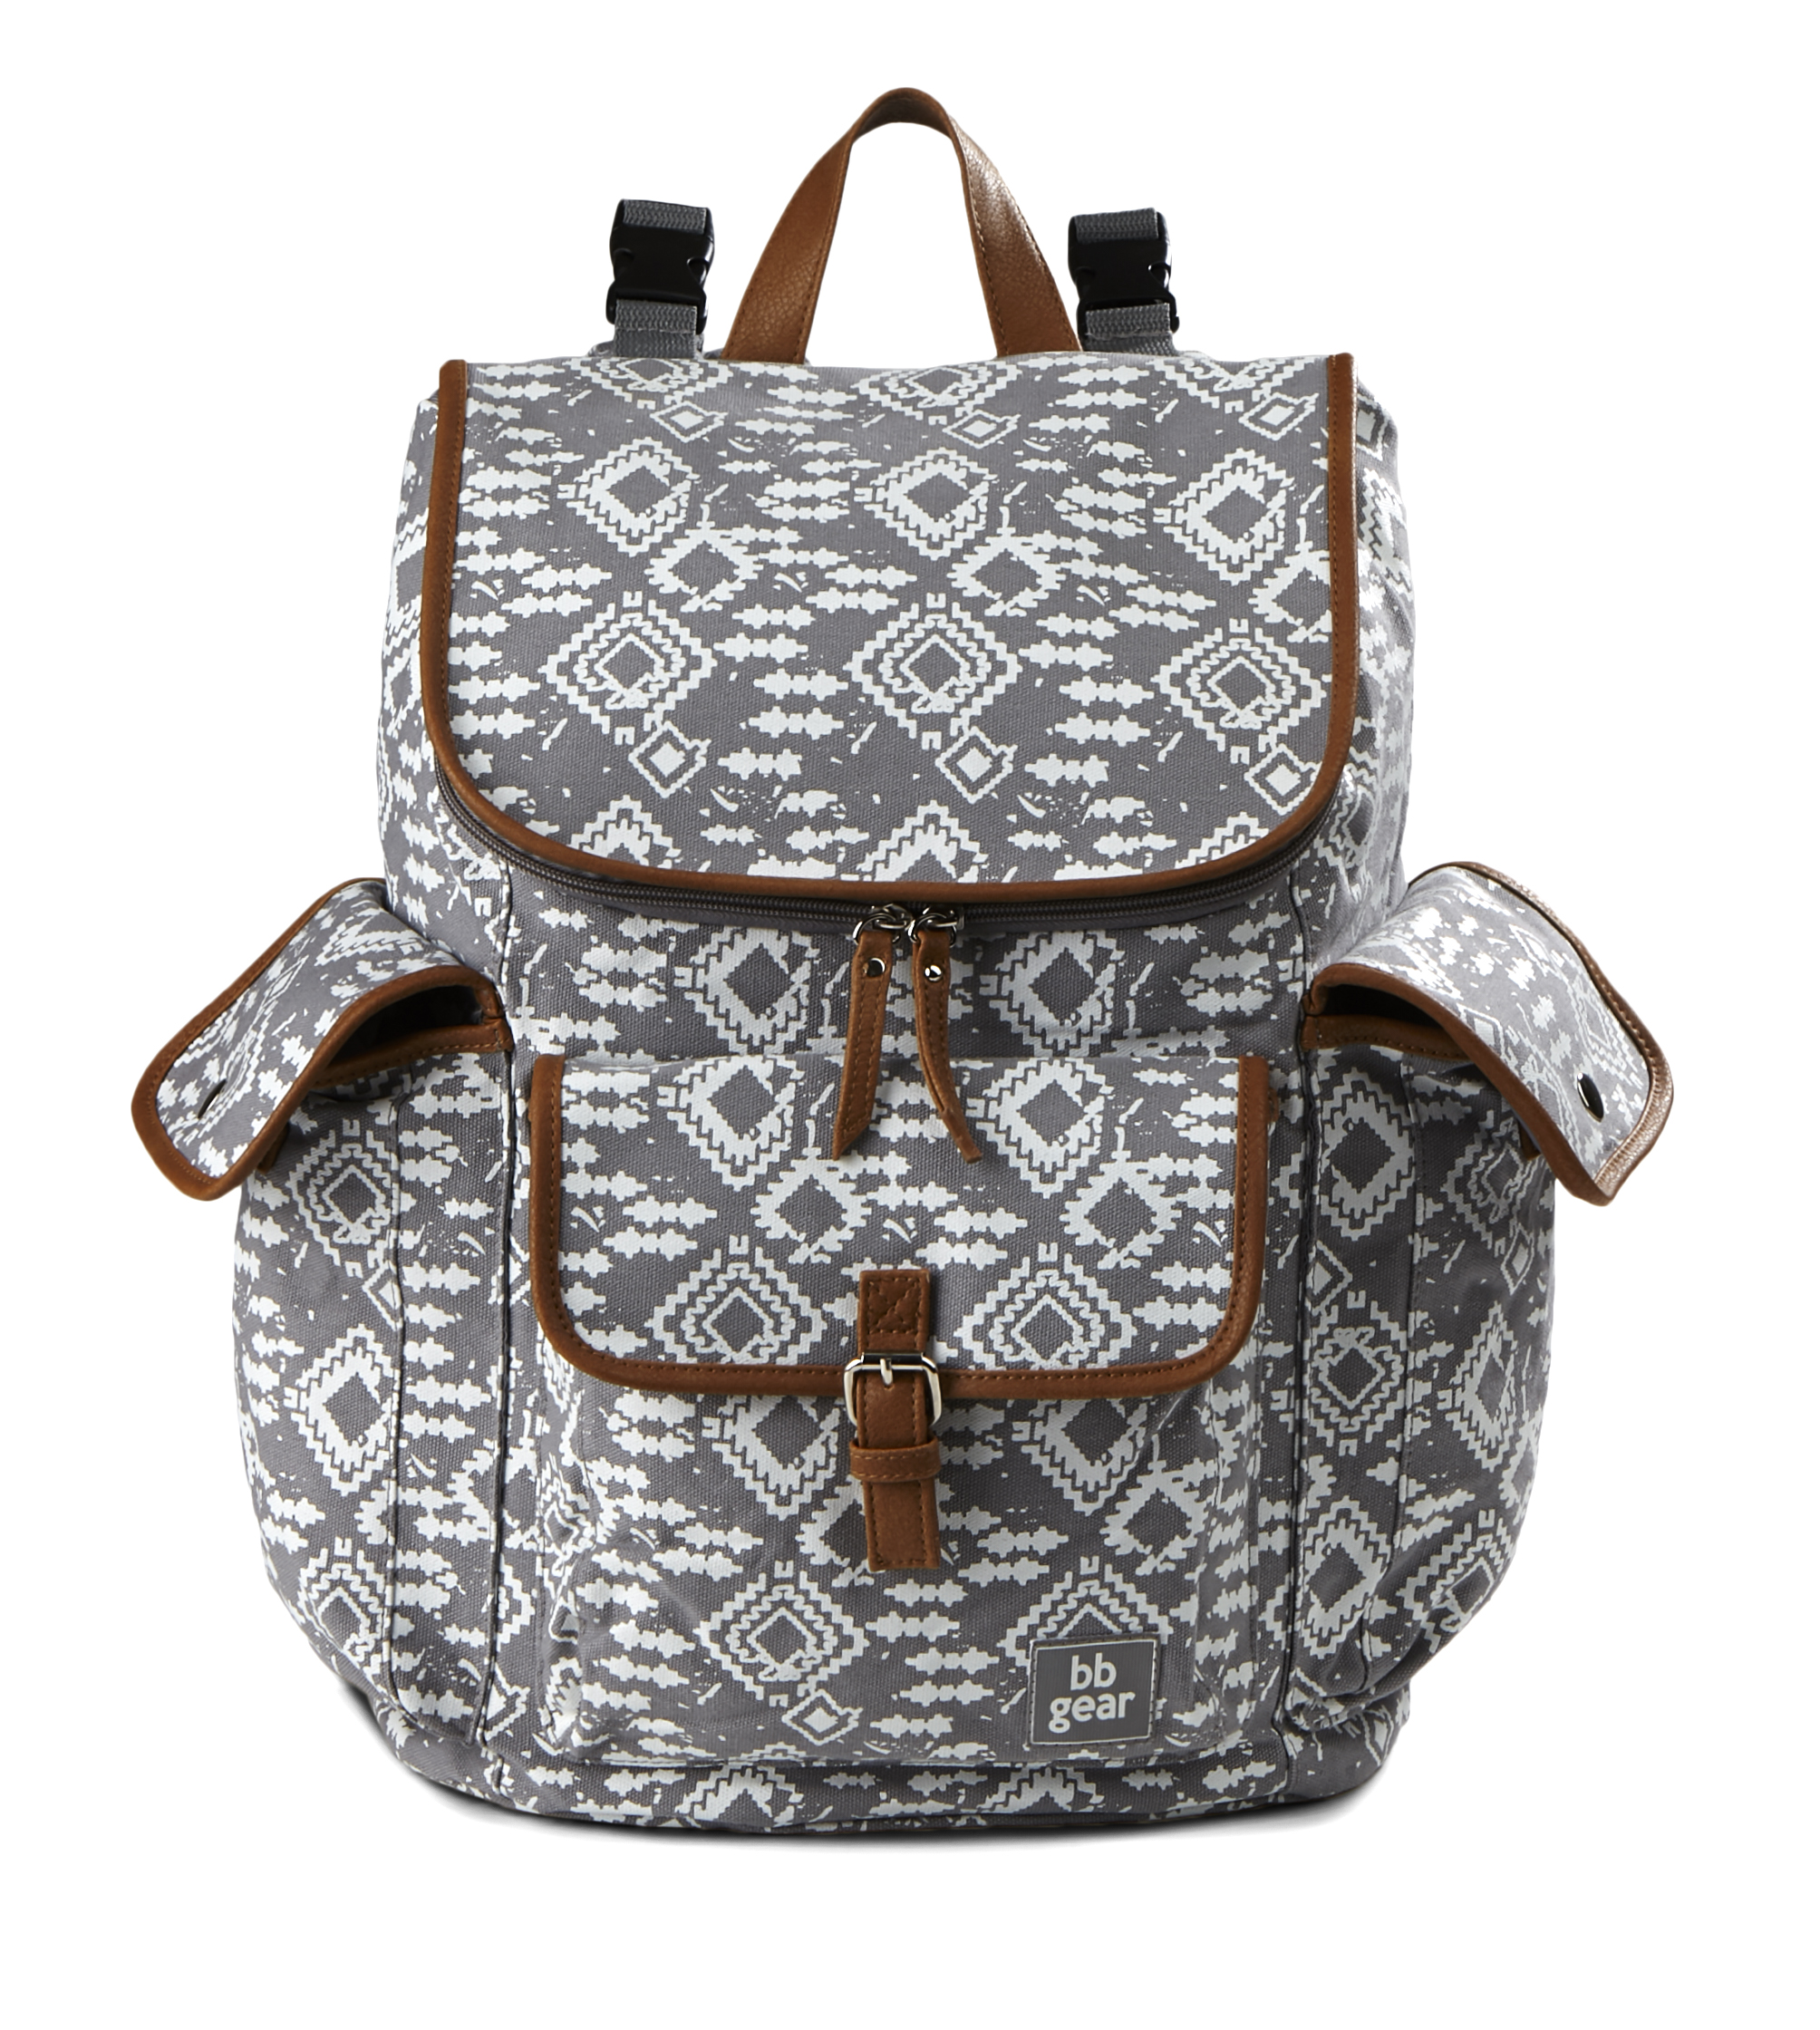 Baby Boom BB Gear Aztec Print Backpack Diaper Bag Grey White by Baby Boom BB Gear